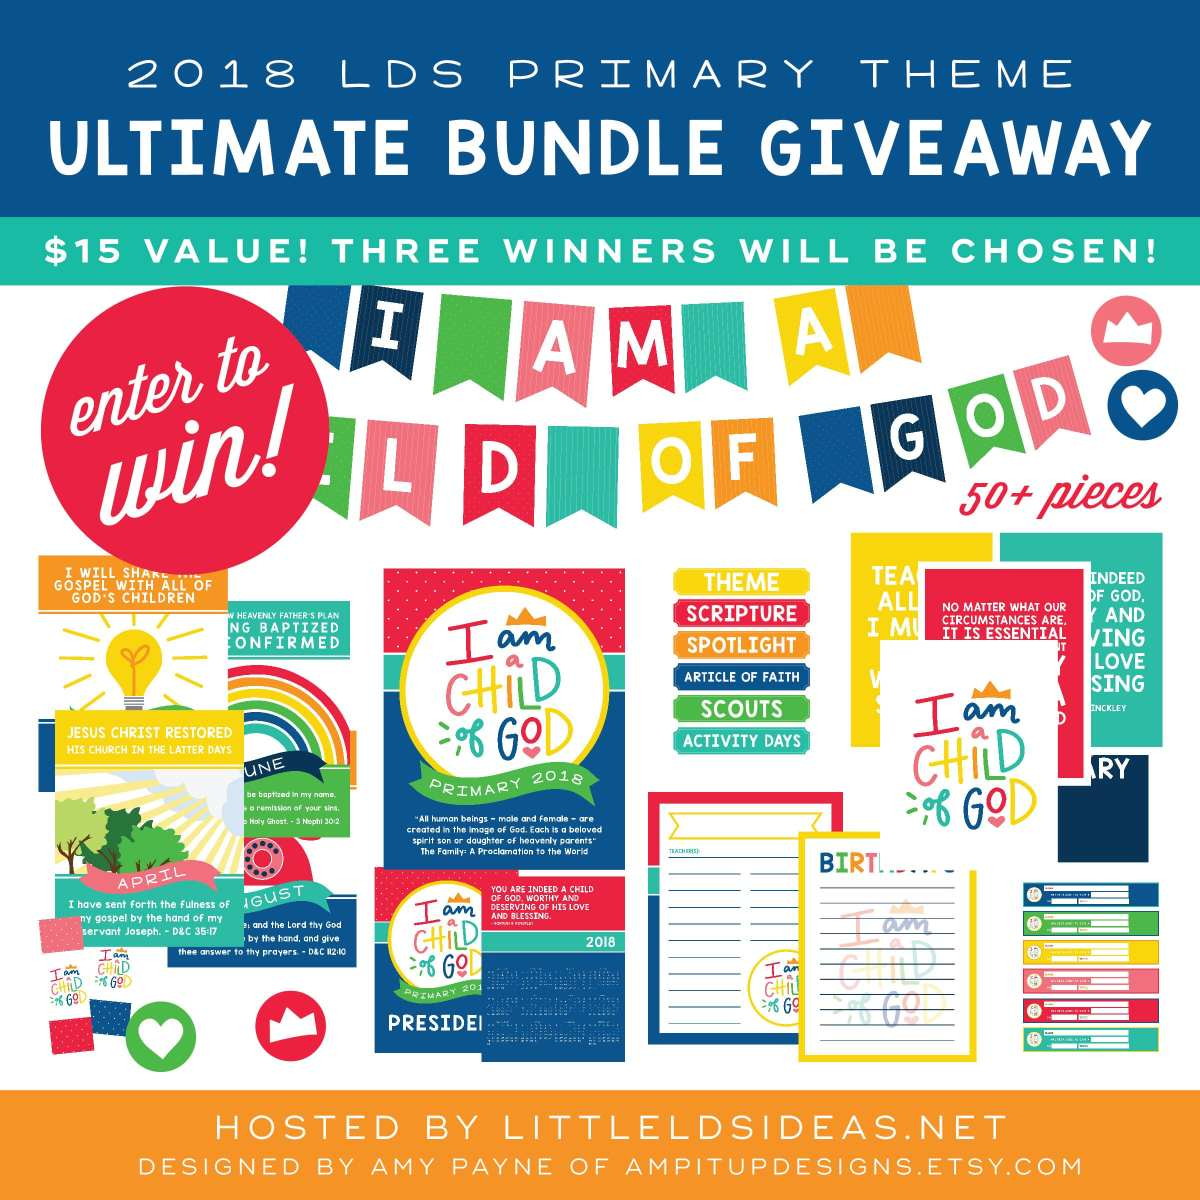 Need a little help getting ready for the new year? Head on over to Little LDS Ideas and enter to win this amazing LDS Primary bundle from AMPitup Designs!